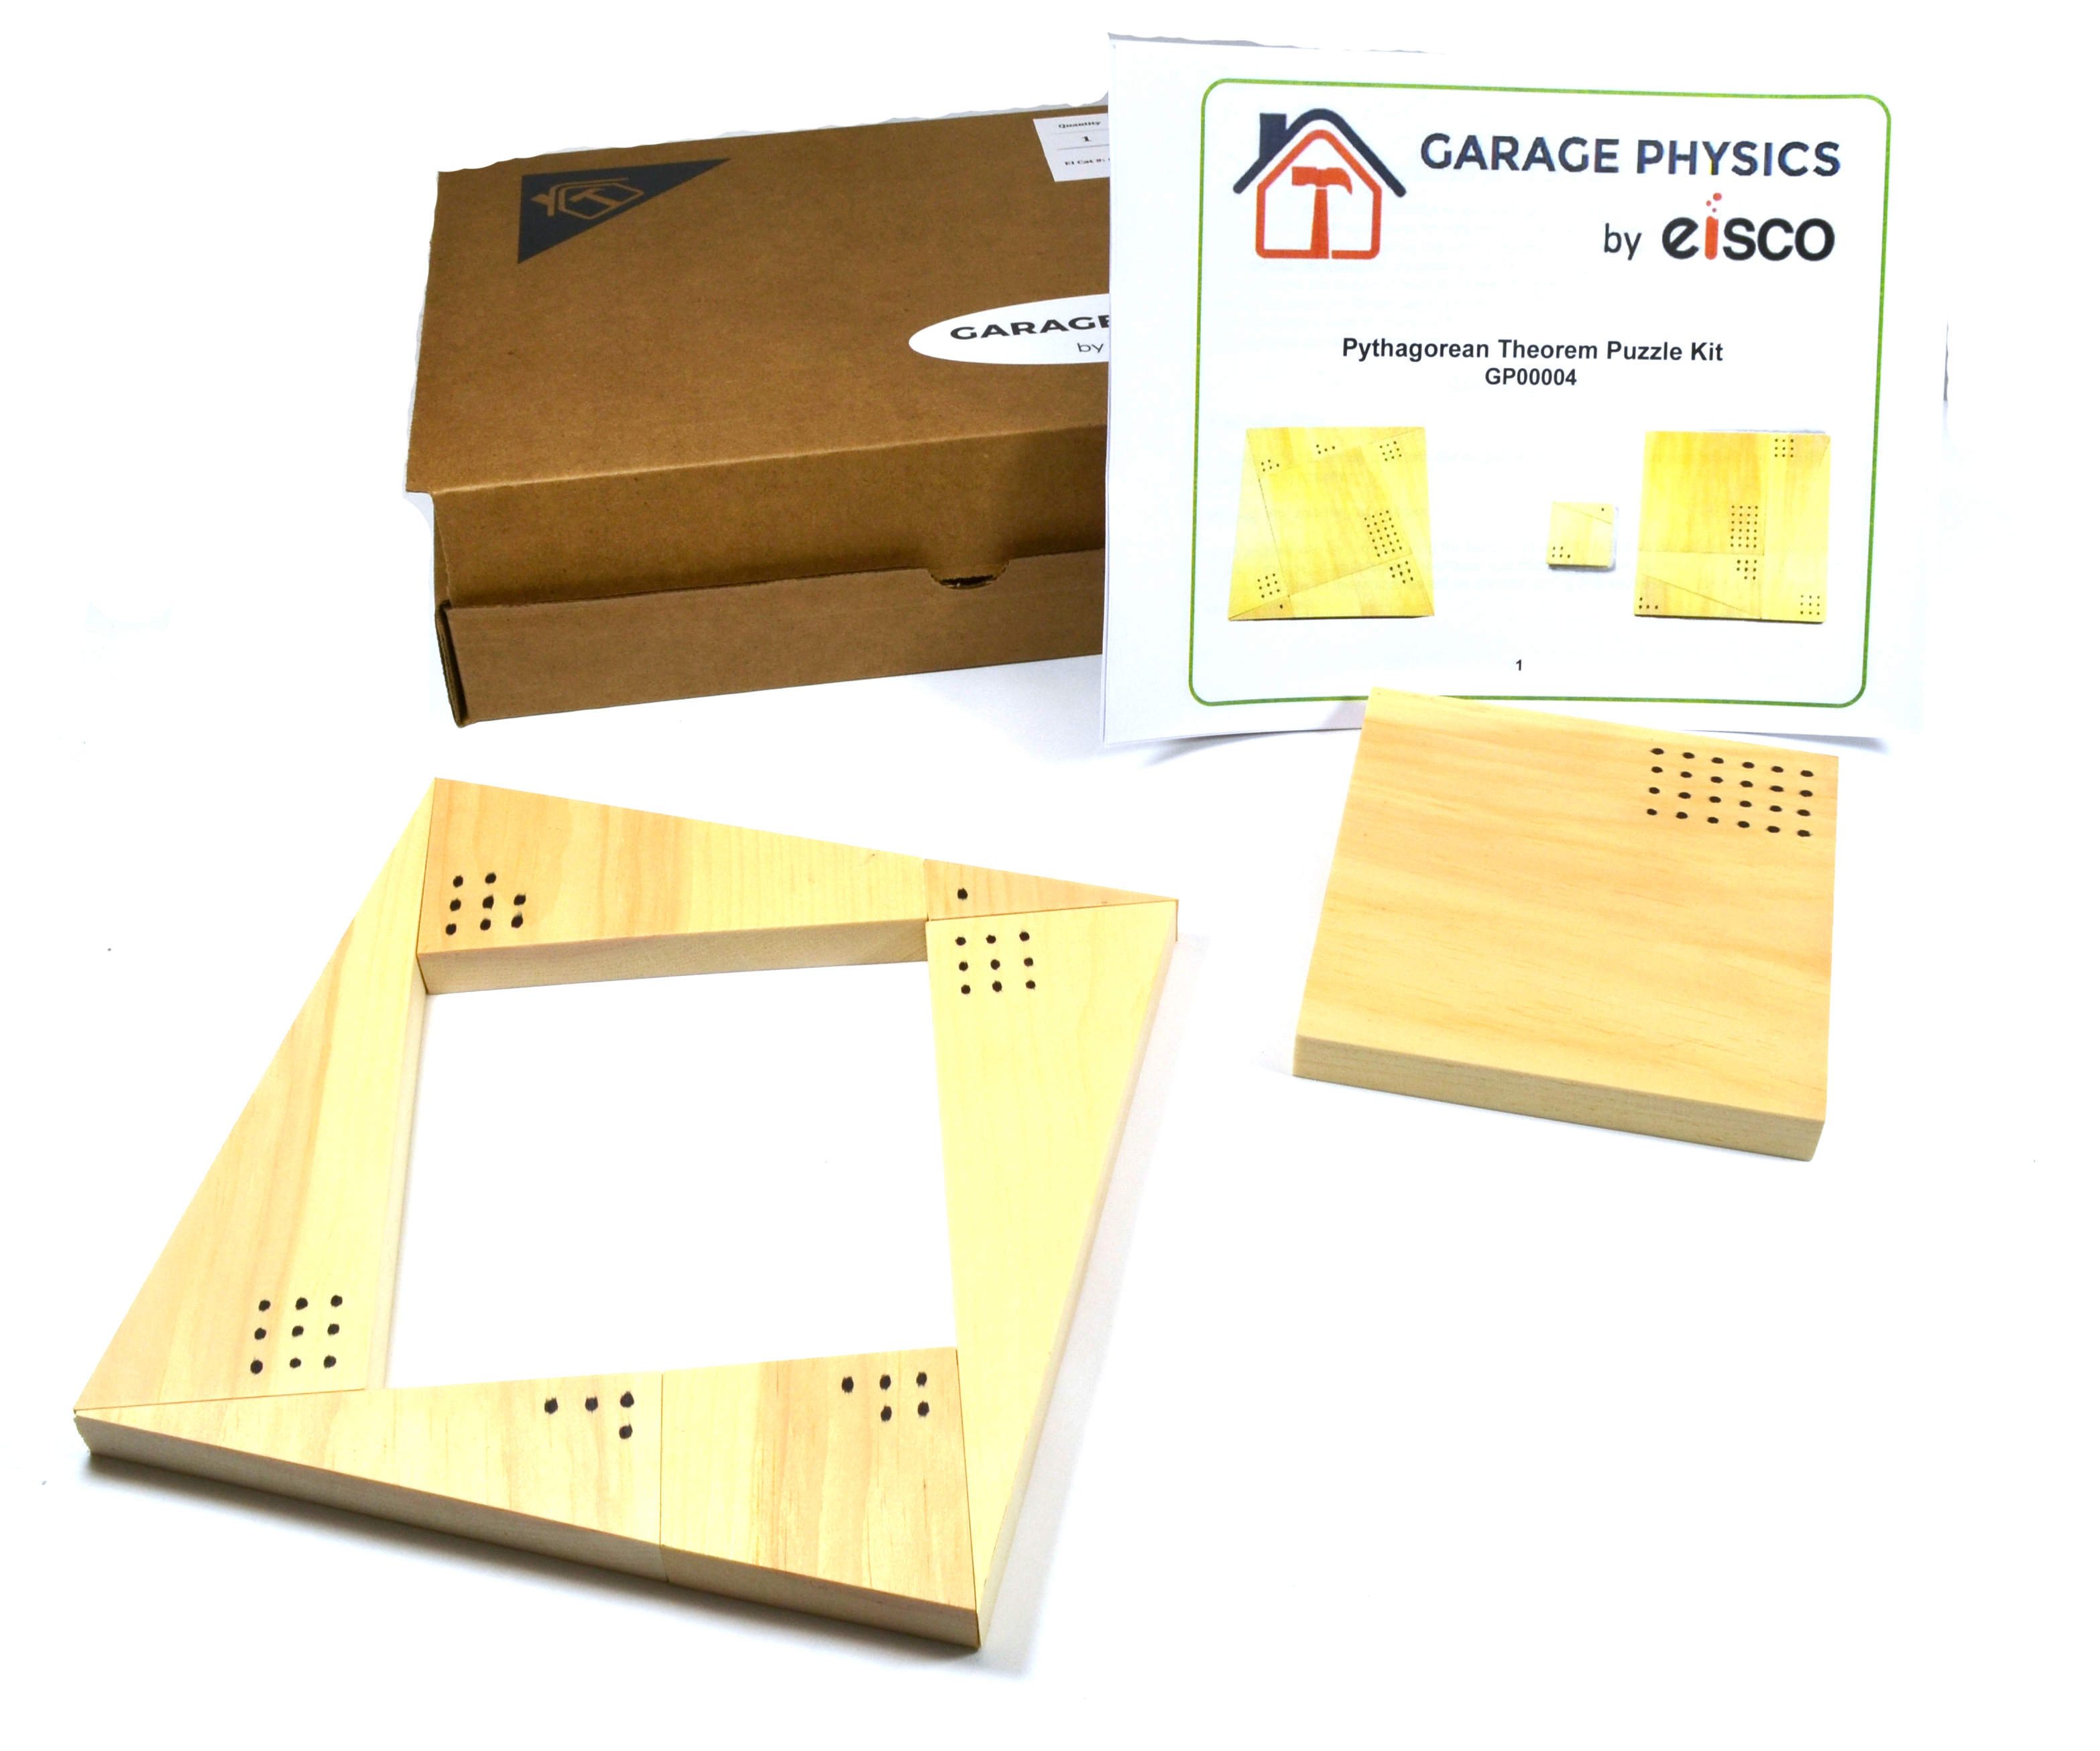 Garage Physics Pythagorean Theorem Puzzle Kit